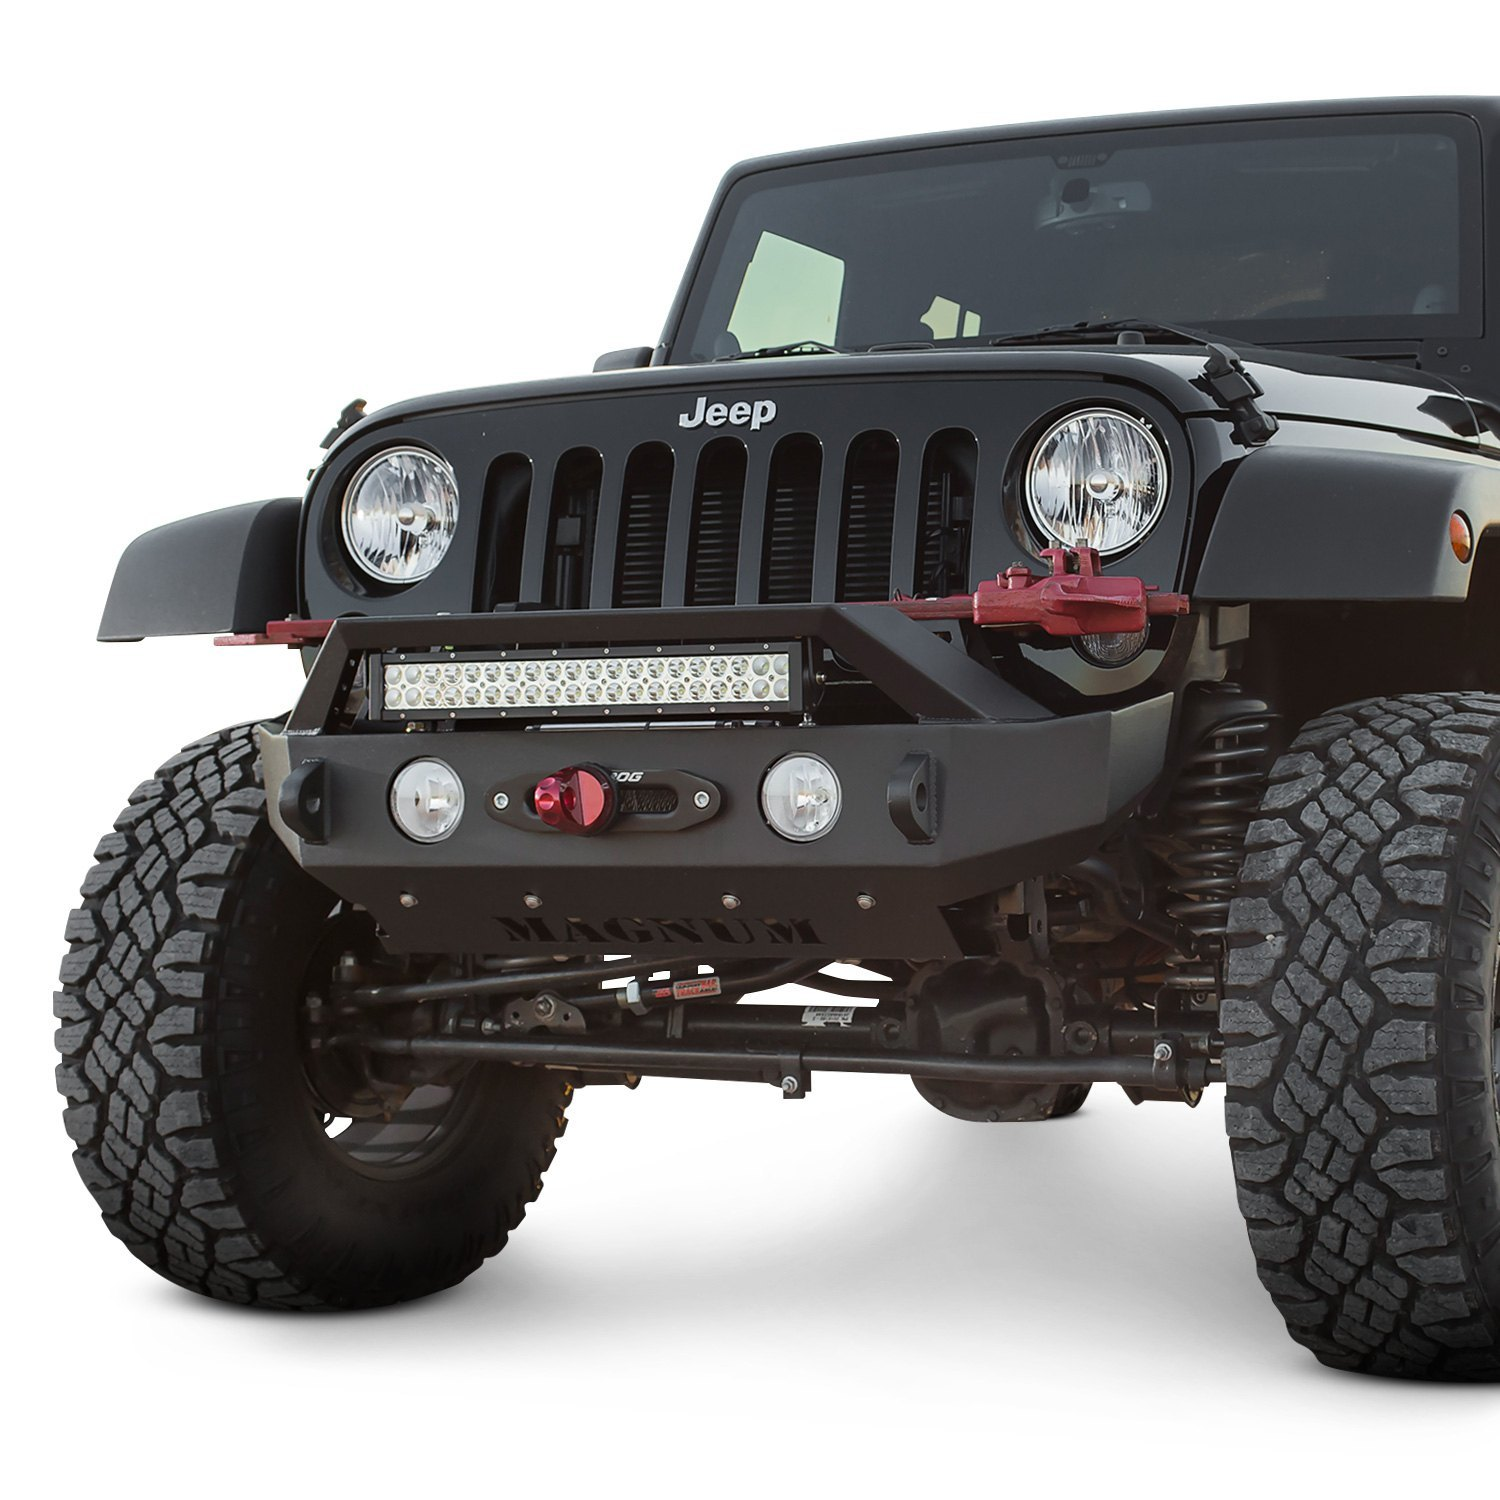 Ici magnum mid width black front winch hd bumper with rt series light bar mount ici magnum mid width front hd black bumper aloadofball Image collections